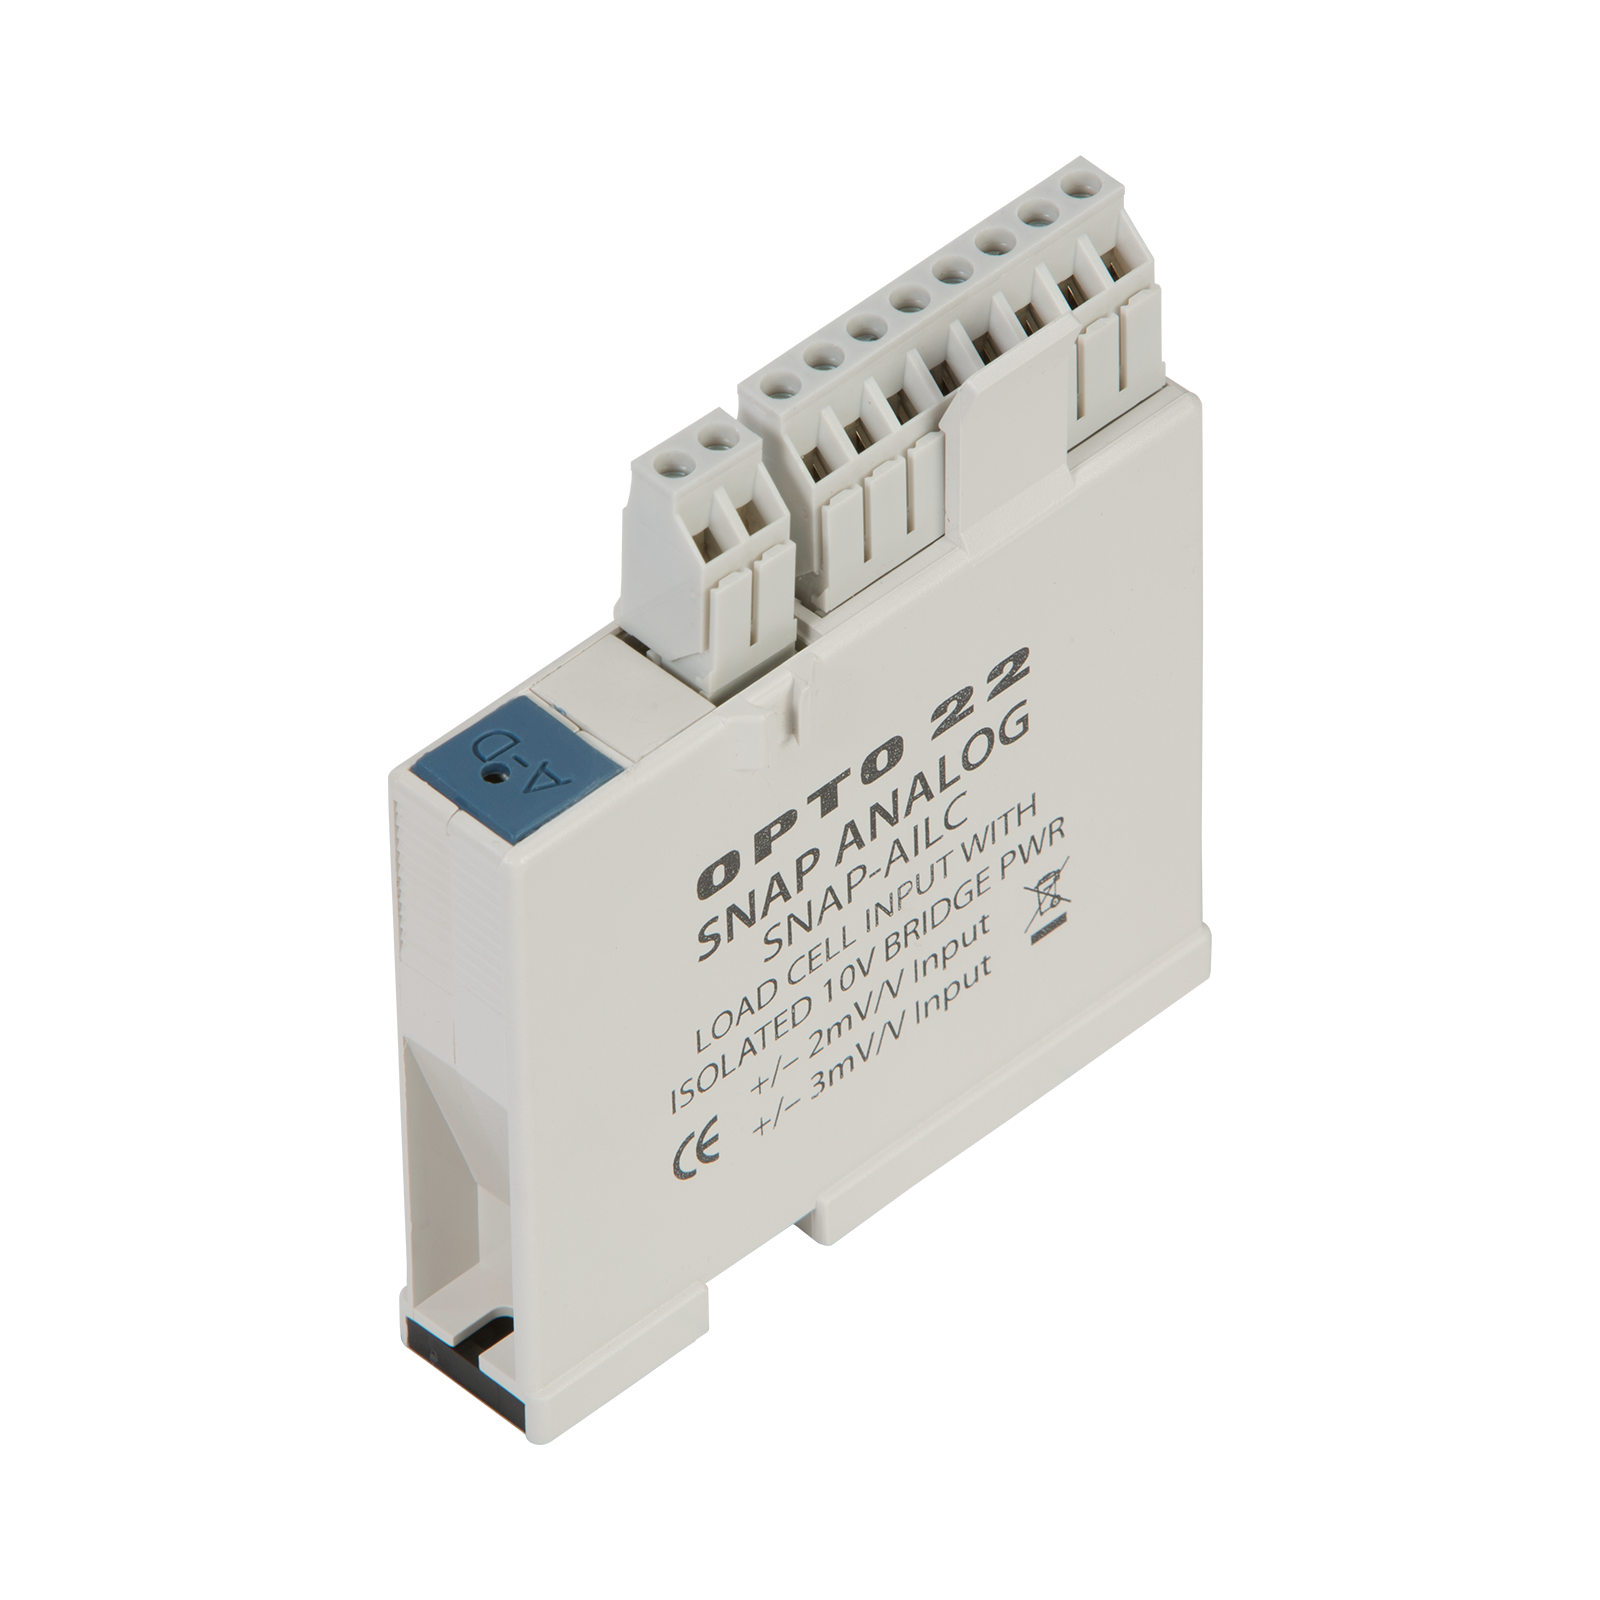 Opto22 Snap Ailc Load Cell Input Module 10 Vdc Excitation 4 Wire Wiring Diagram Previous